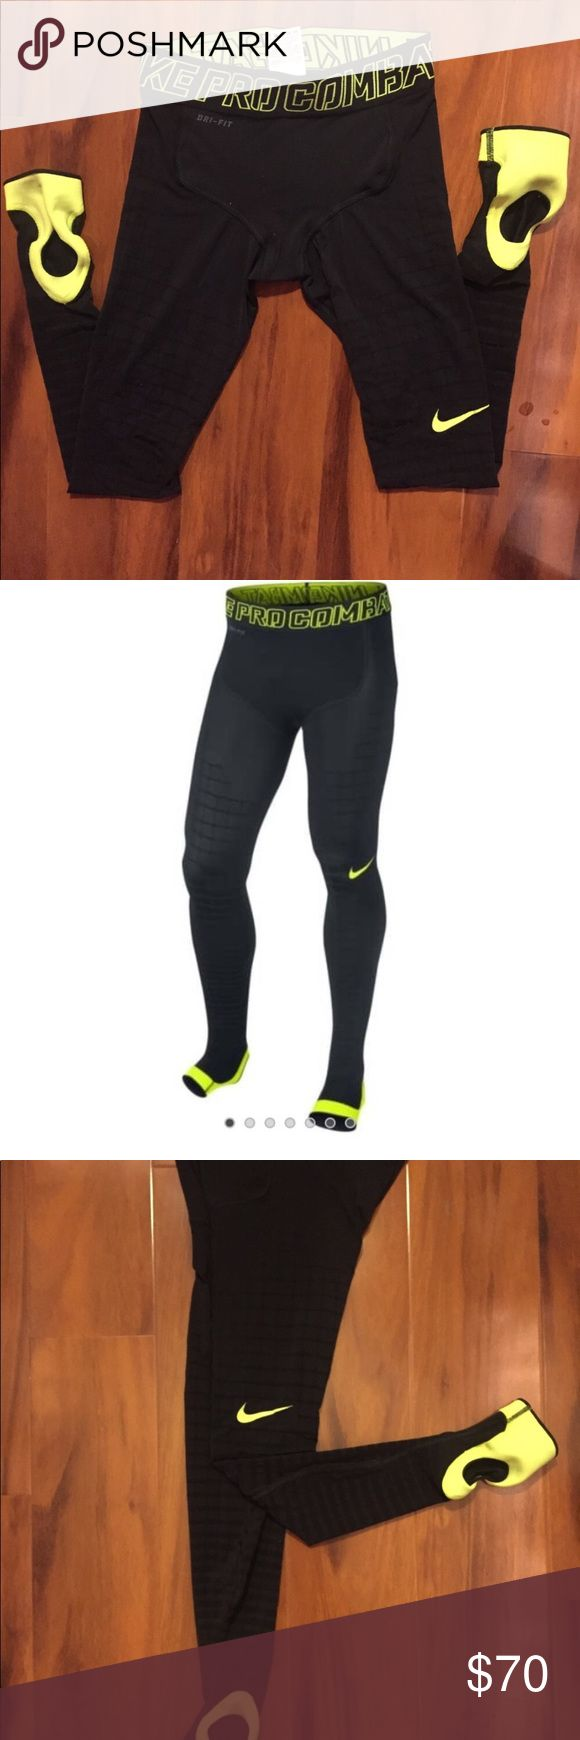 Nike Pro Combat Recovery Hypertight - Black/Volt Size M  Only worn a few times   SKU586233-010-NIKE Durable Nike Power Grid design for a graduated, compressive fit Dri-FIT fabric helps keep you dry and comfortable Foot stirrup to ensure a secure fit Ultra-lightweight, breathable fabric with mesh lining for ventilation Wide stretch waist for support and a snug fit Flatlock seams move smoothly against the skin PRODUCT DETAILS Fabric: Dri-FIT 80% polyester/20% spandex Nike Pants Sweatpants…